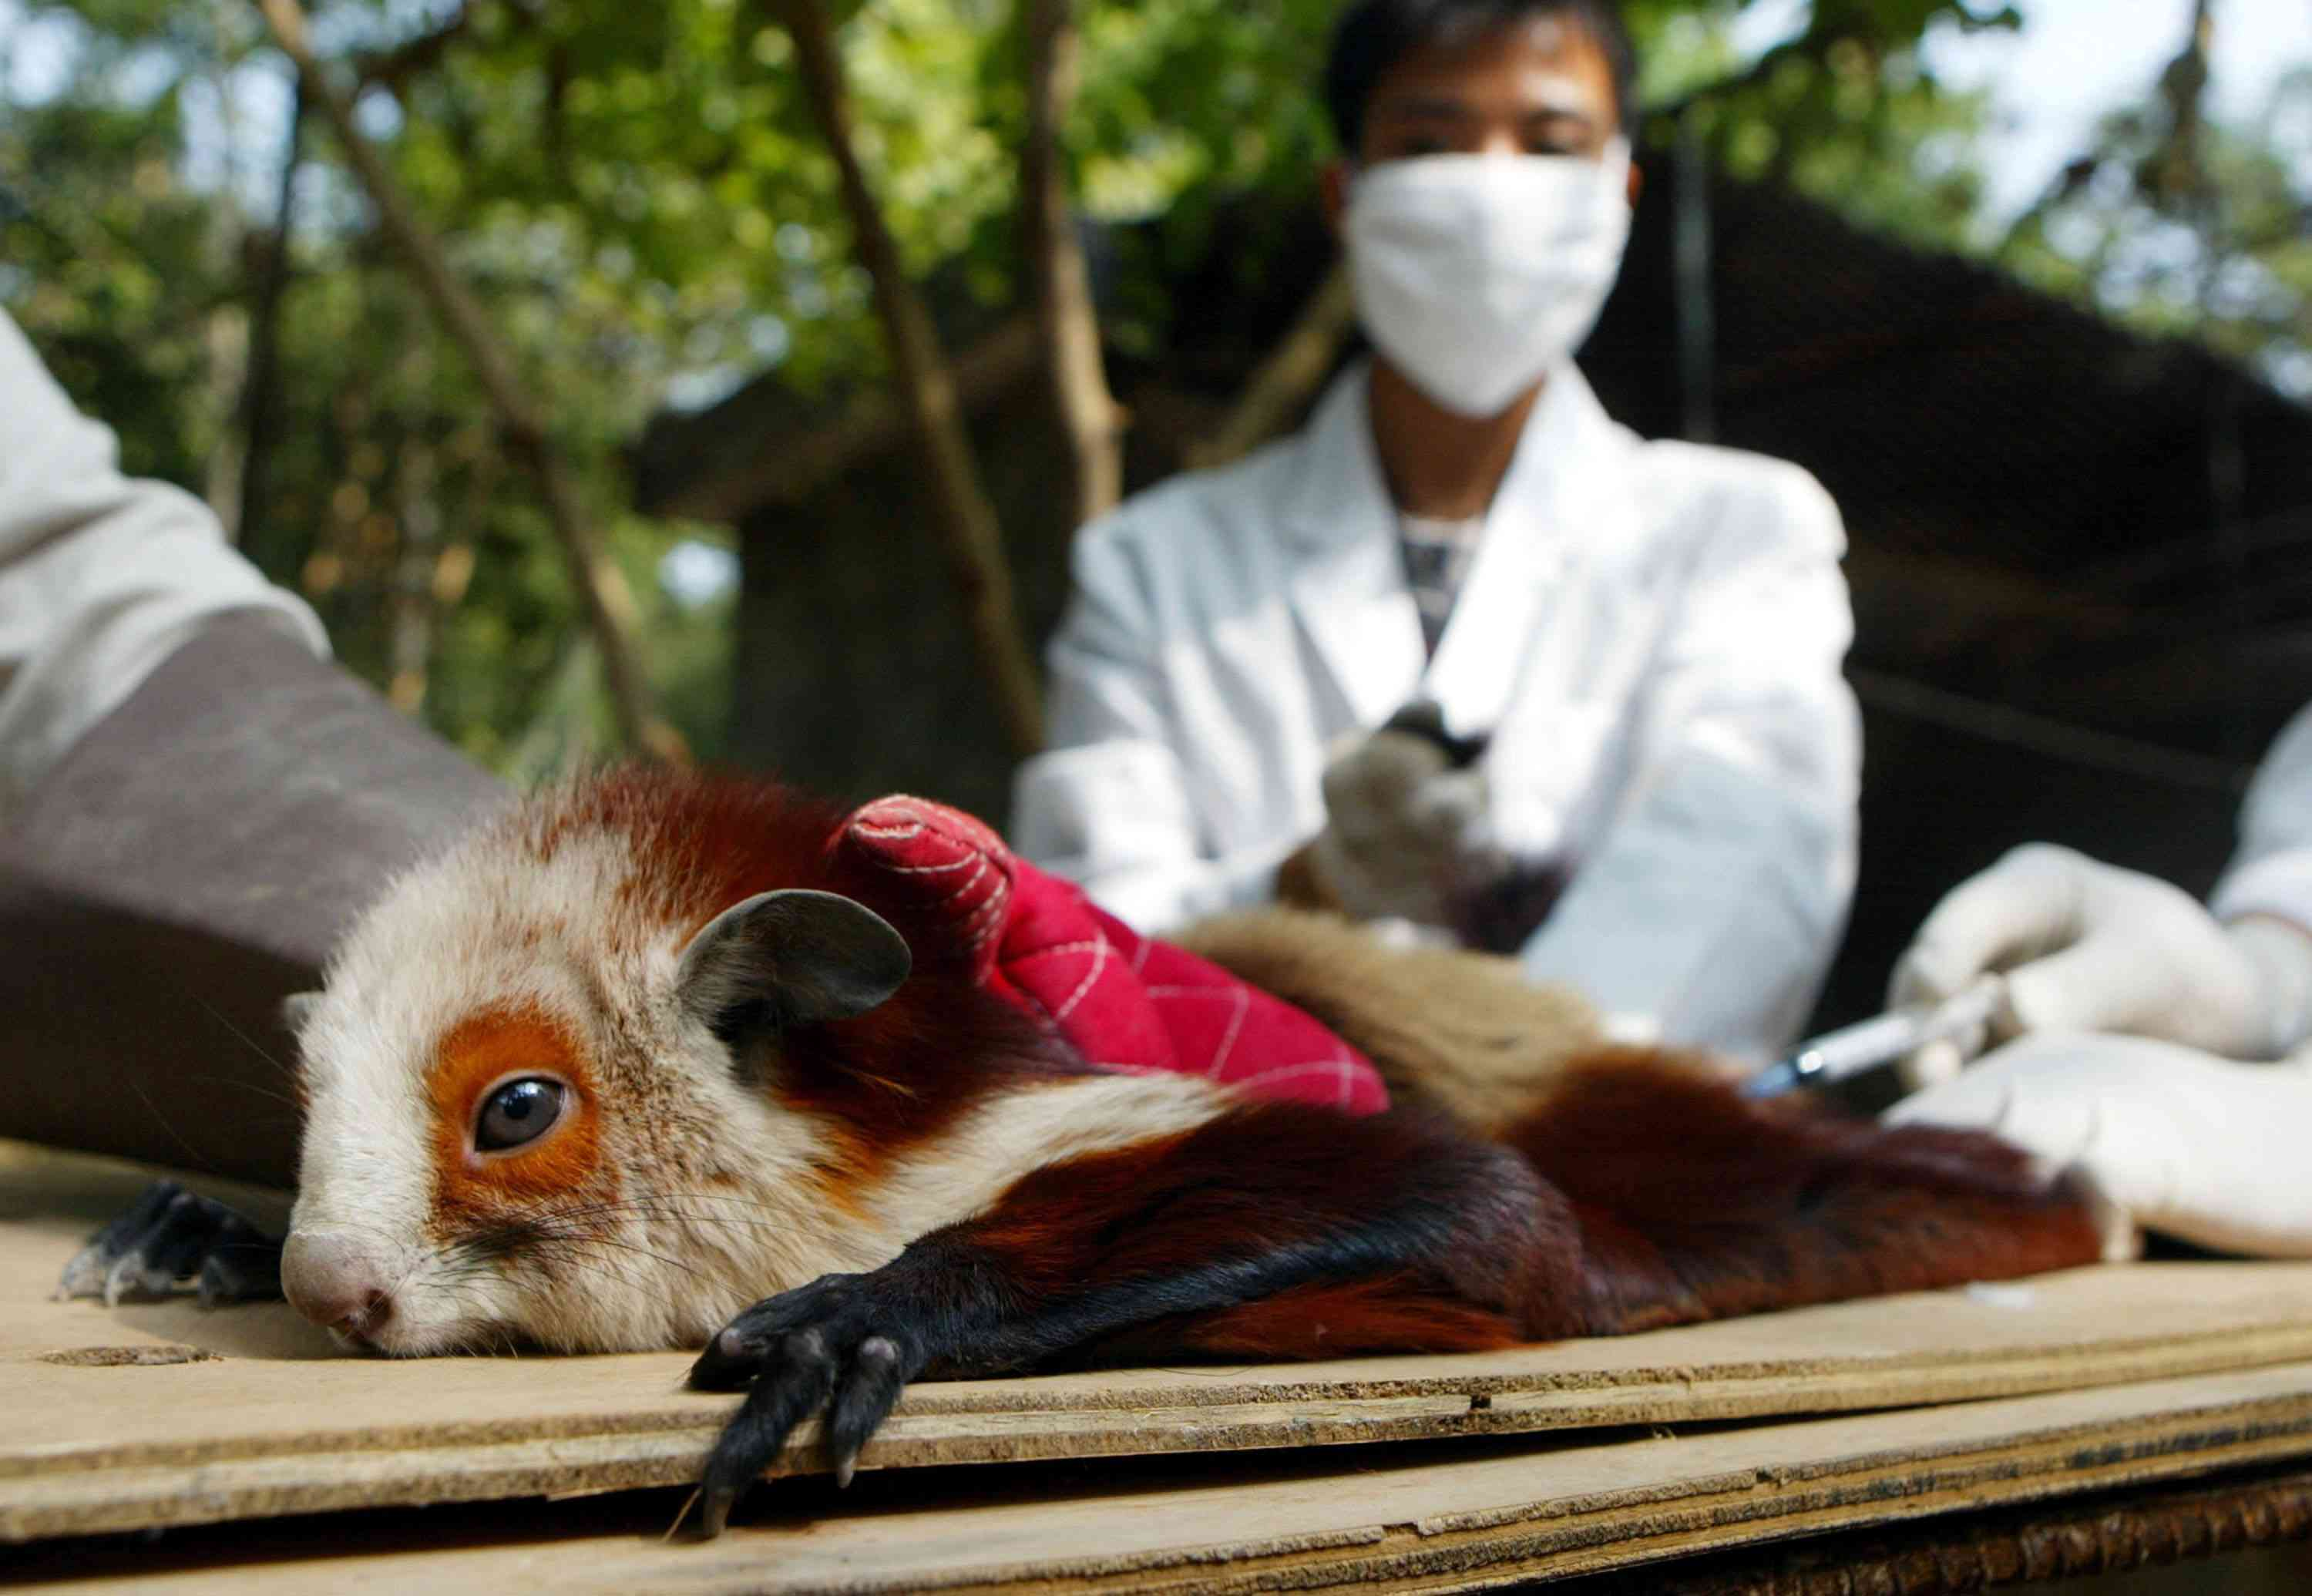 Chinese red and white giant flying squirrel, Petaurista alborufus